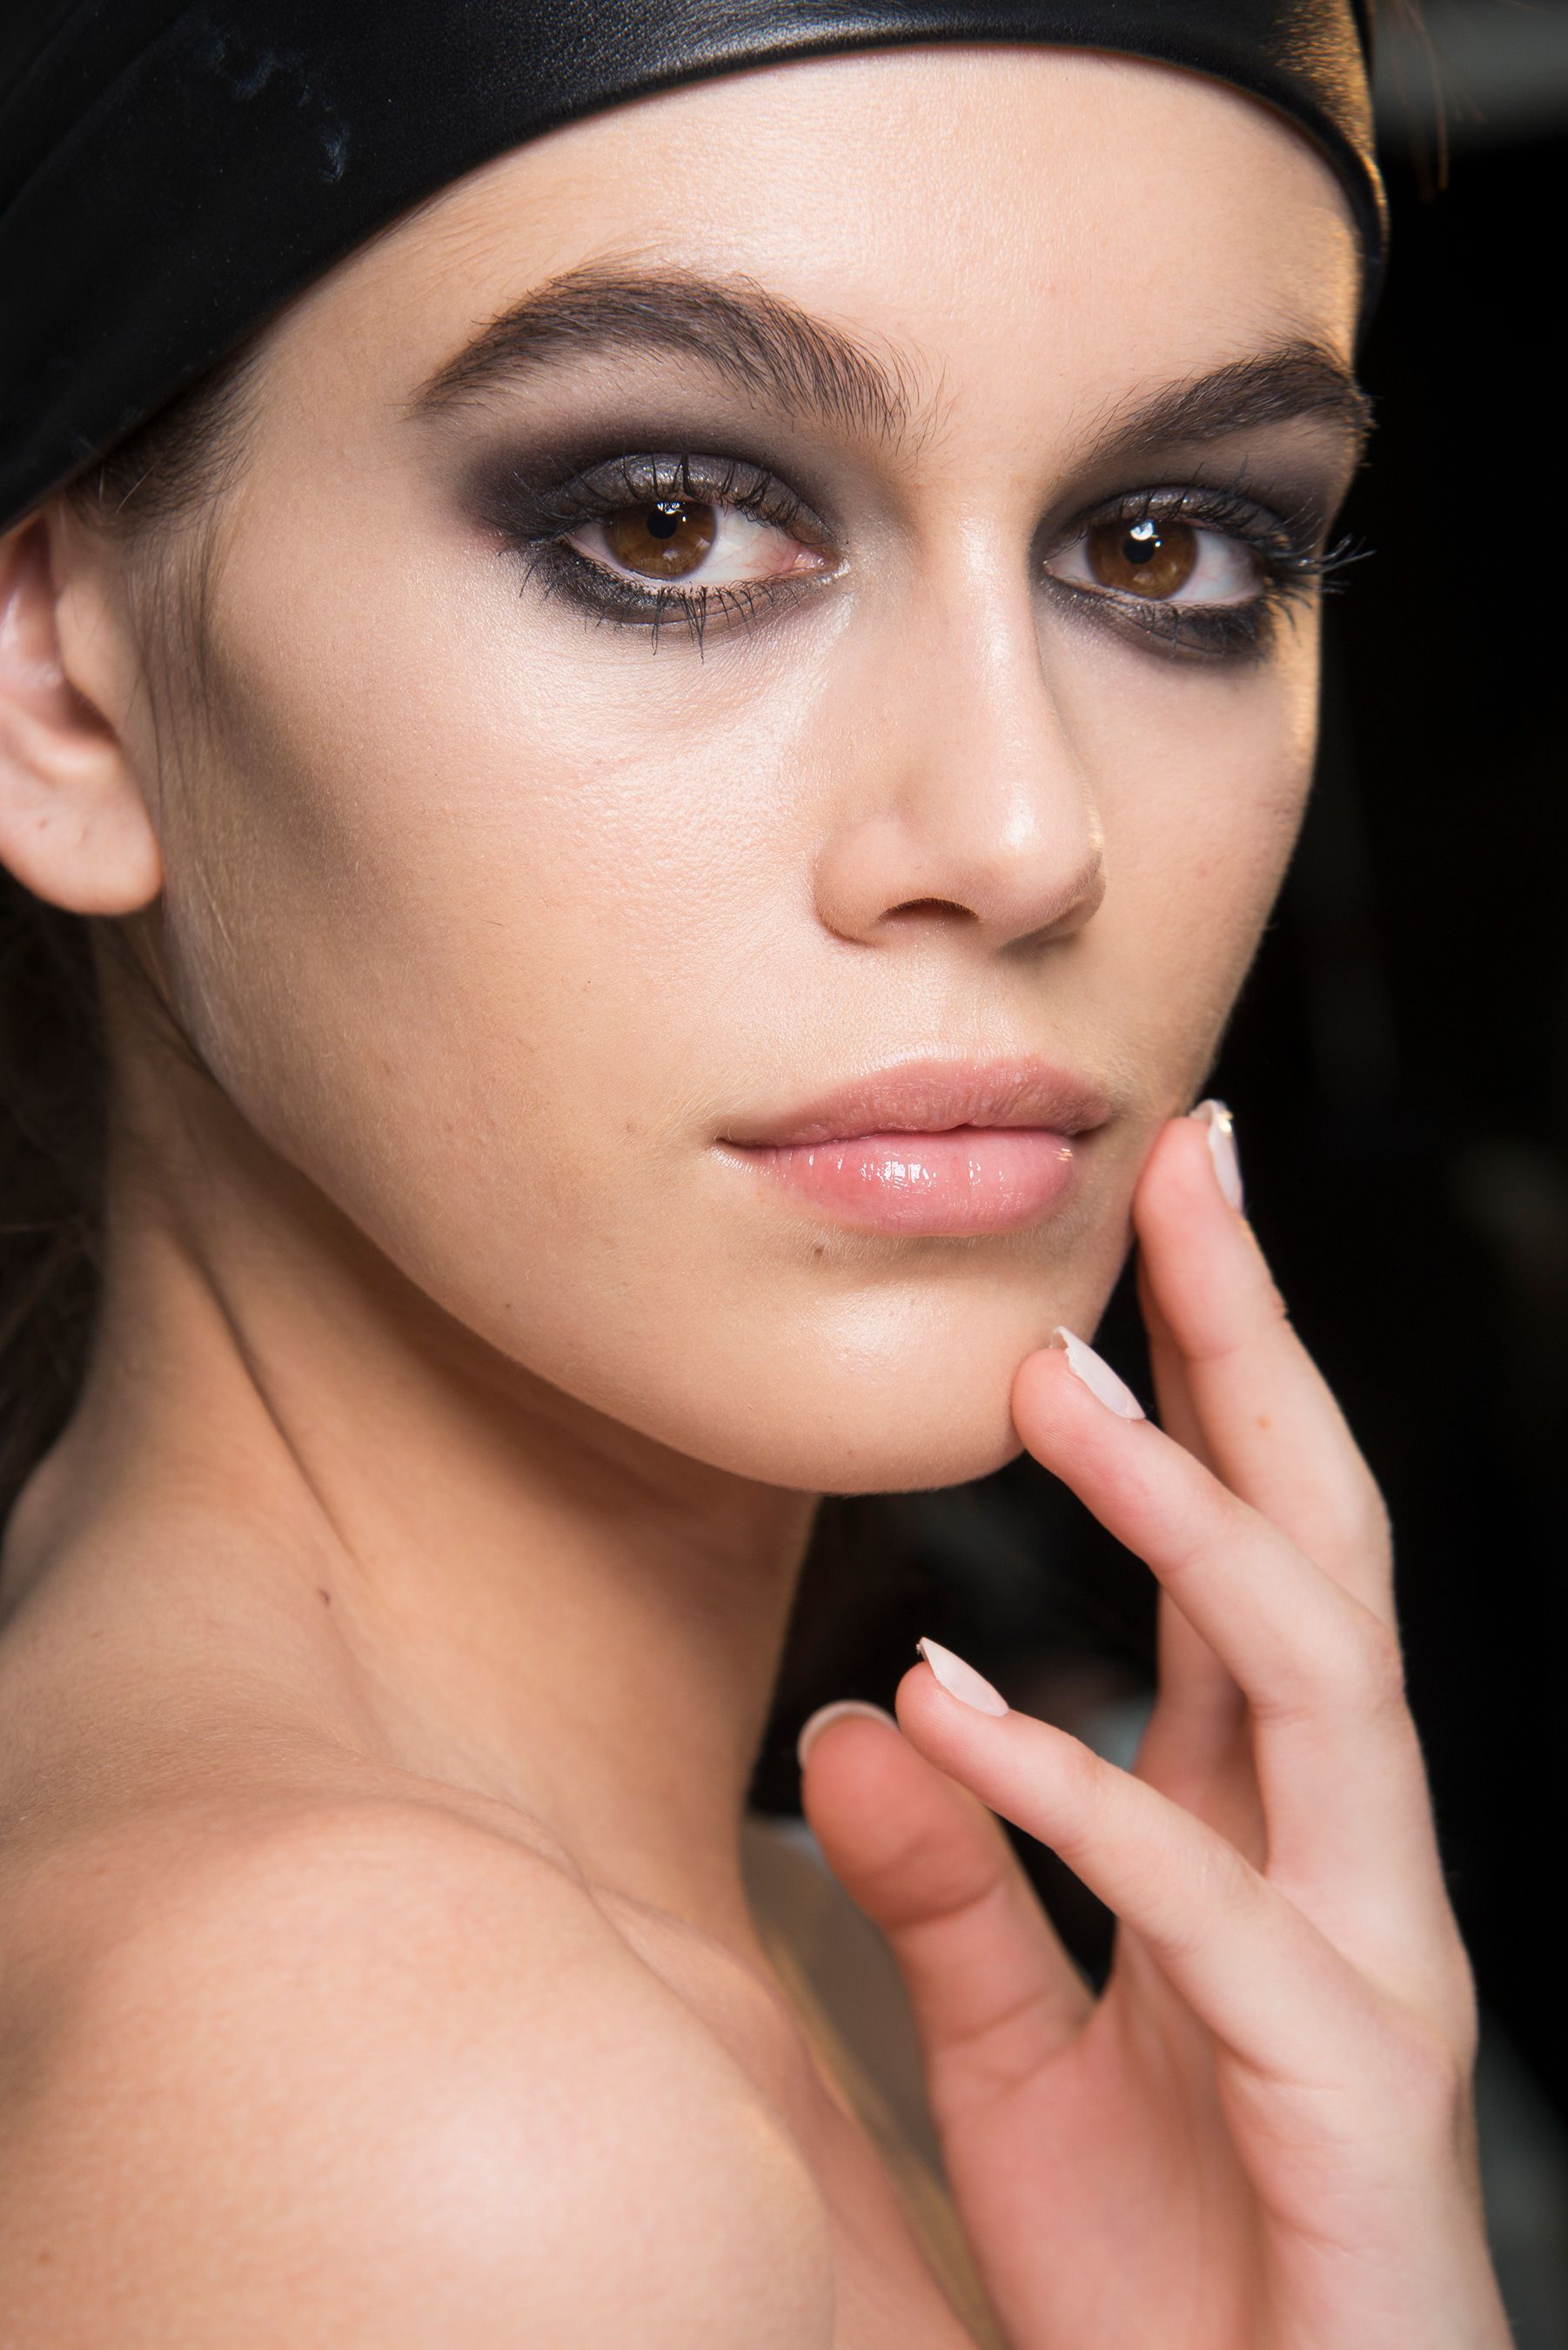 Dior Eye Makeup From The AW 2019 Show